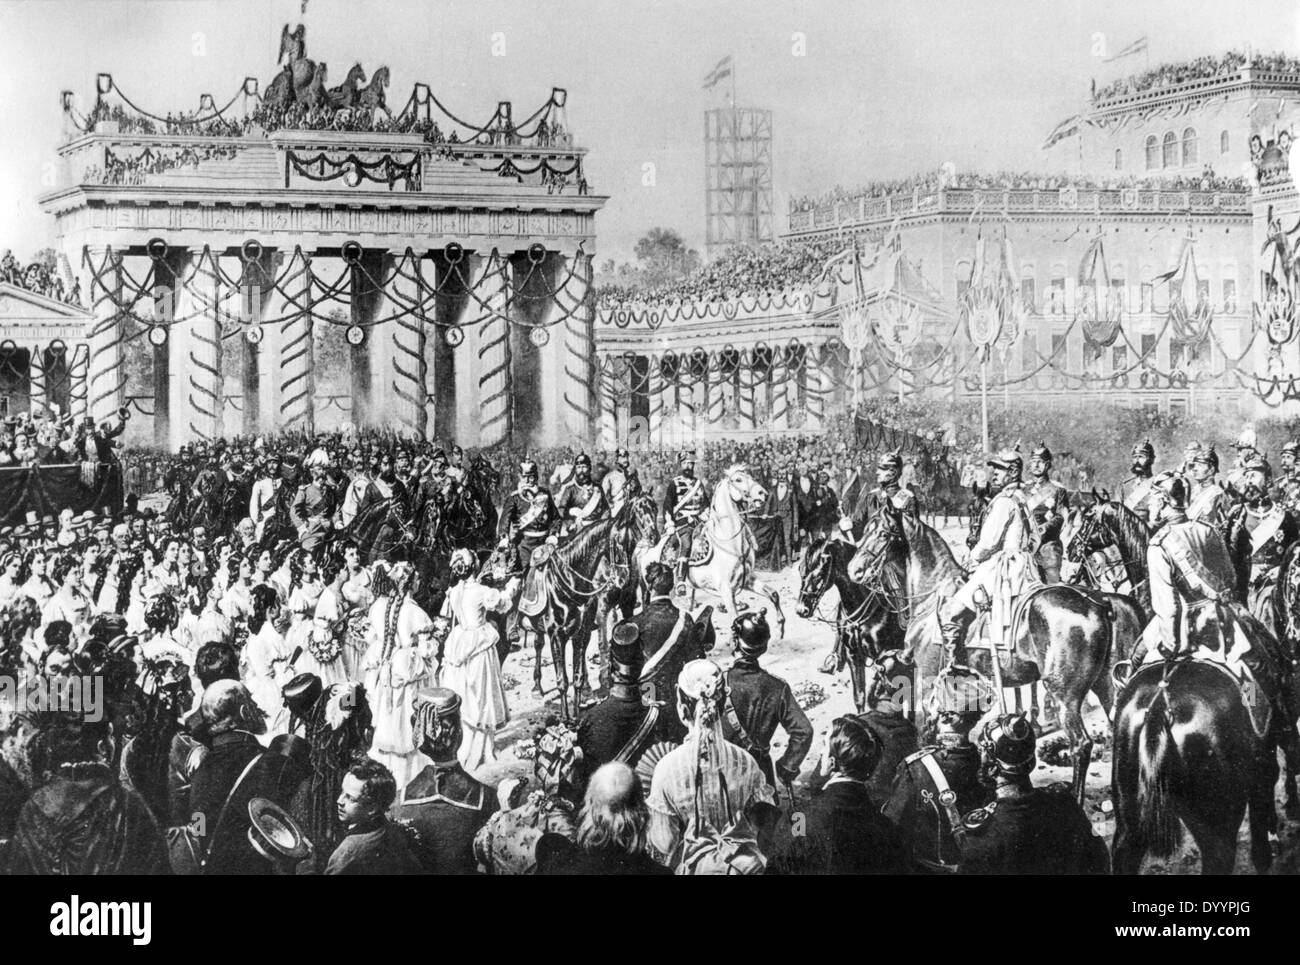 Brandenburg Gate after the Franco-Prussian War, Berlin, 1871